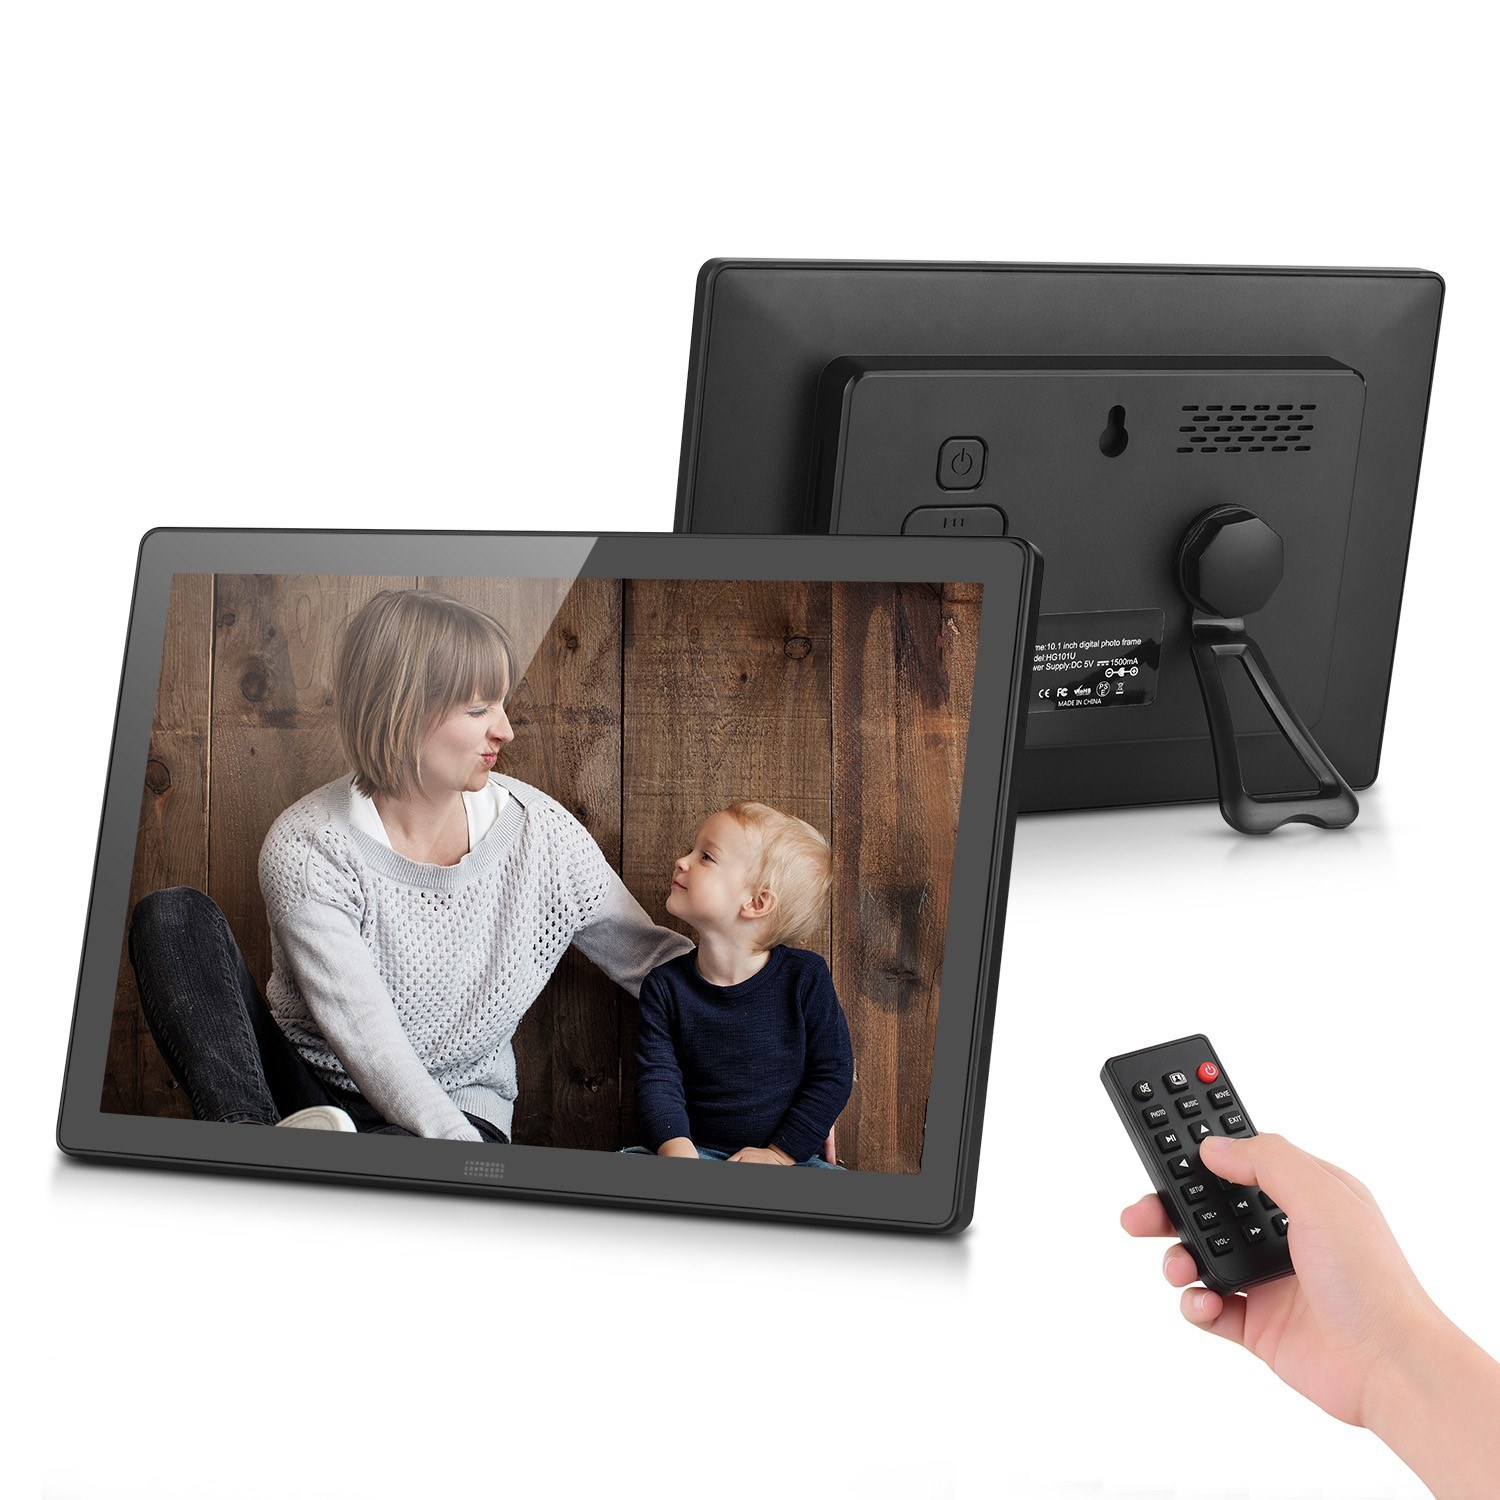 10.1 Inch Digital Photo Frame Desktop Electronic Album 1280*800 HD TFT-LCD Screen Music/1080P Video/Photo Player/Alarm Clock/Clock/Calendar Functions with Remote Control